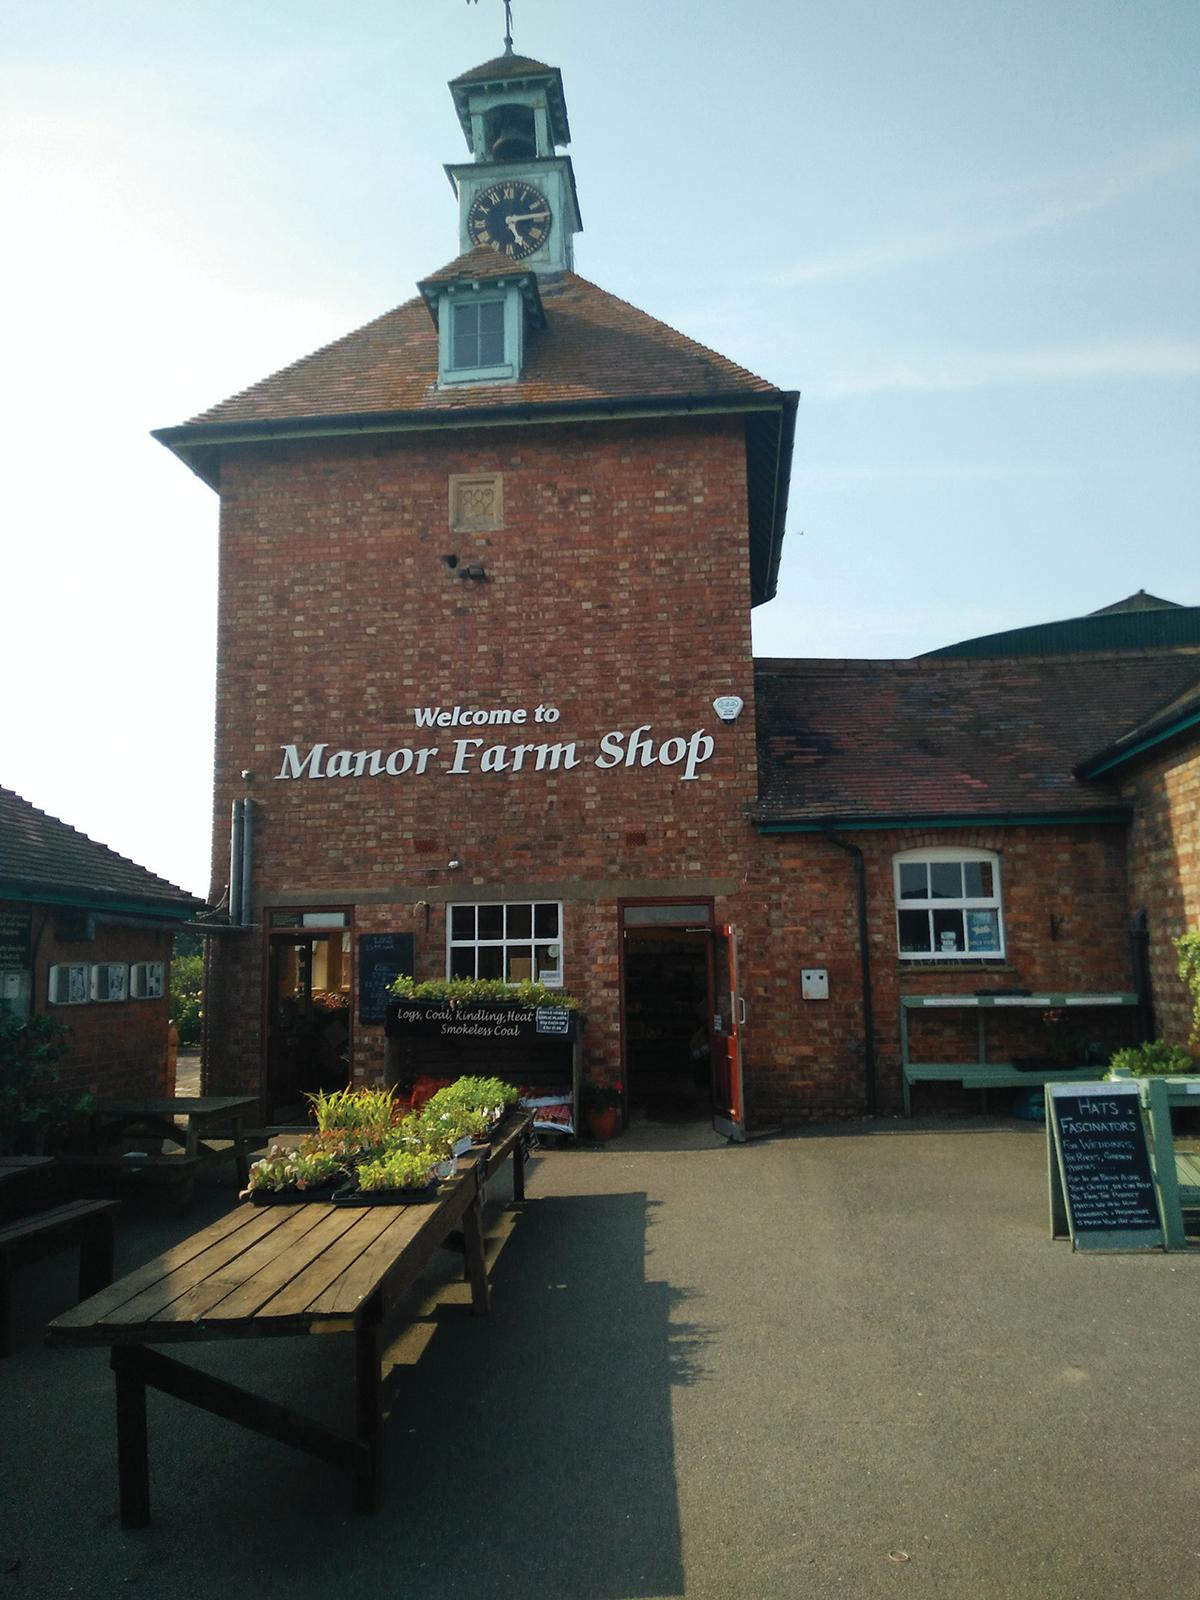 Images from Manor Farm